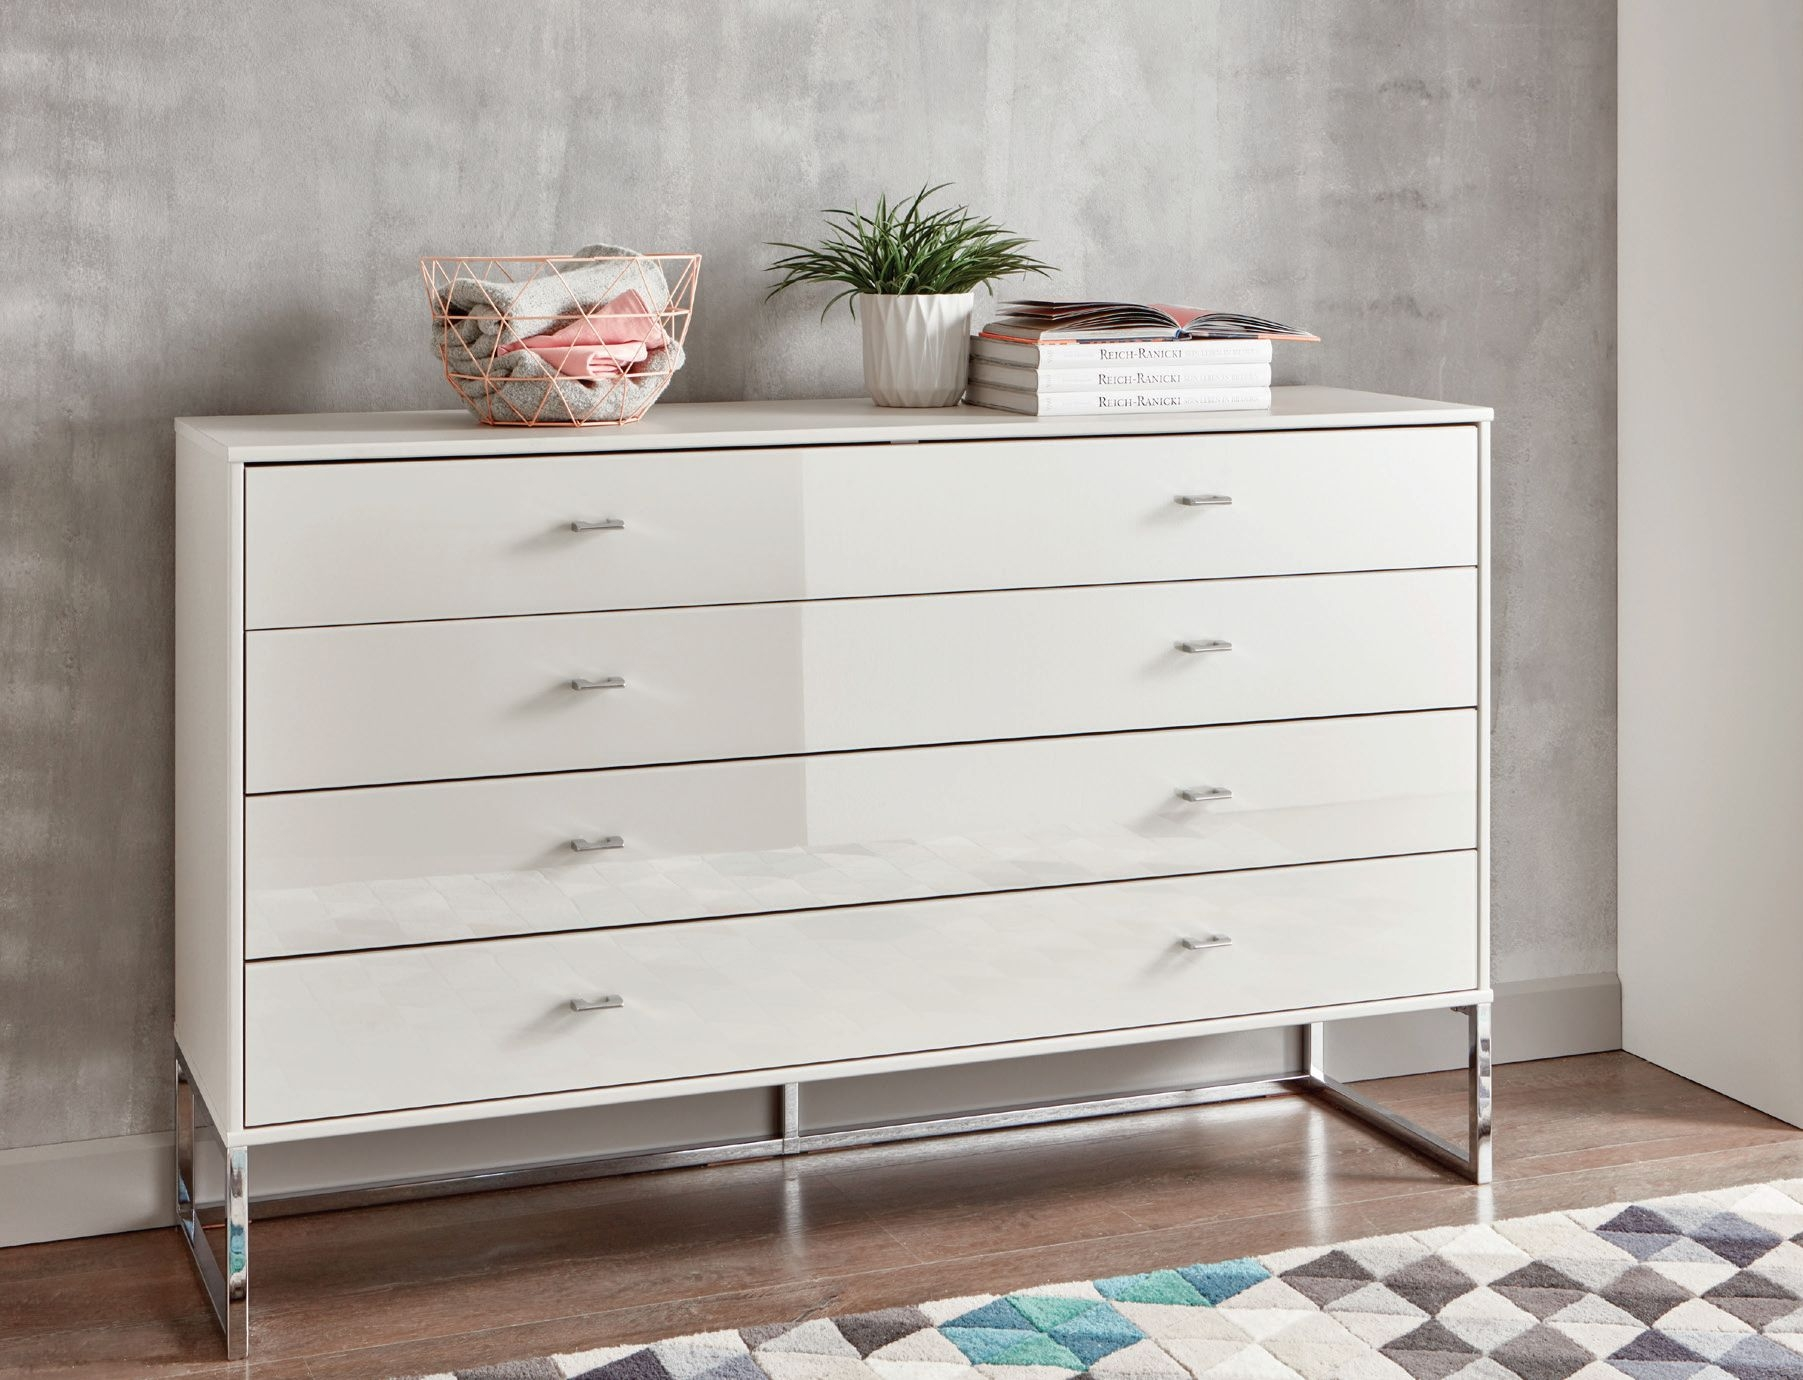 Wiemann Vigo 4 Drawer Chest in Champagne - W 40cm